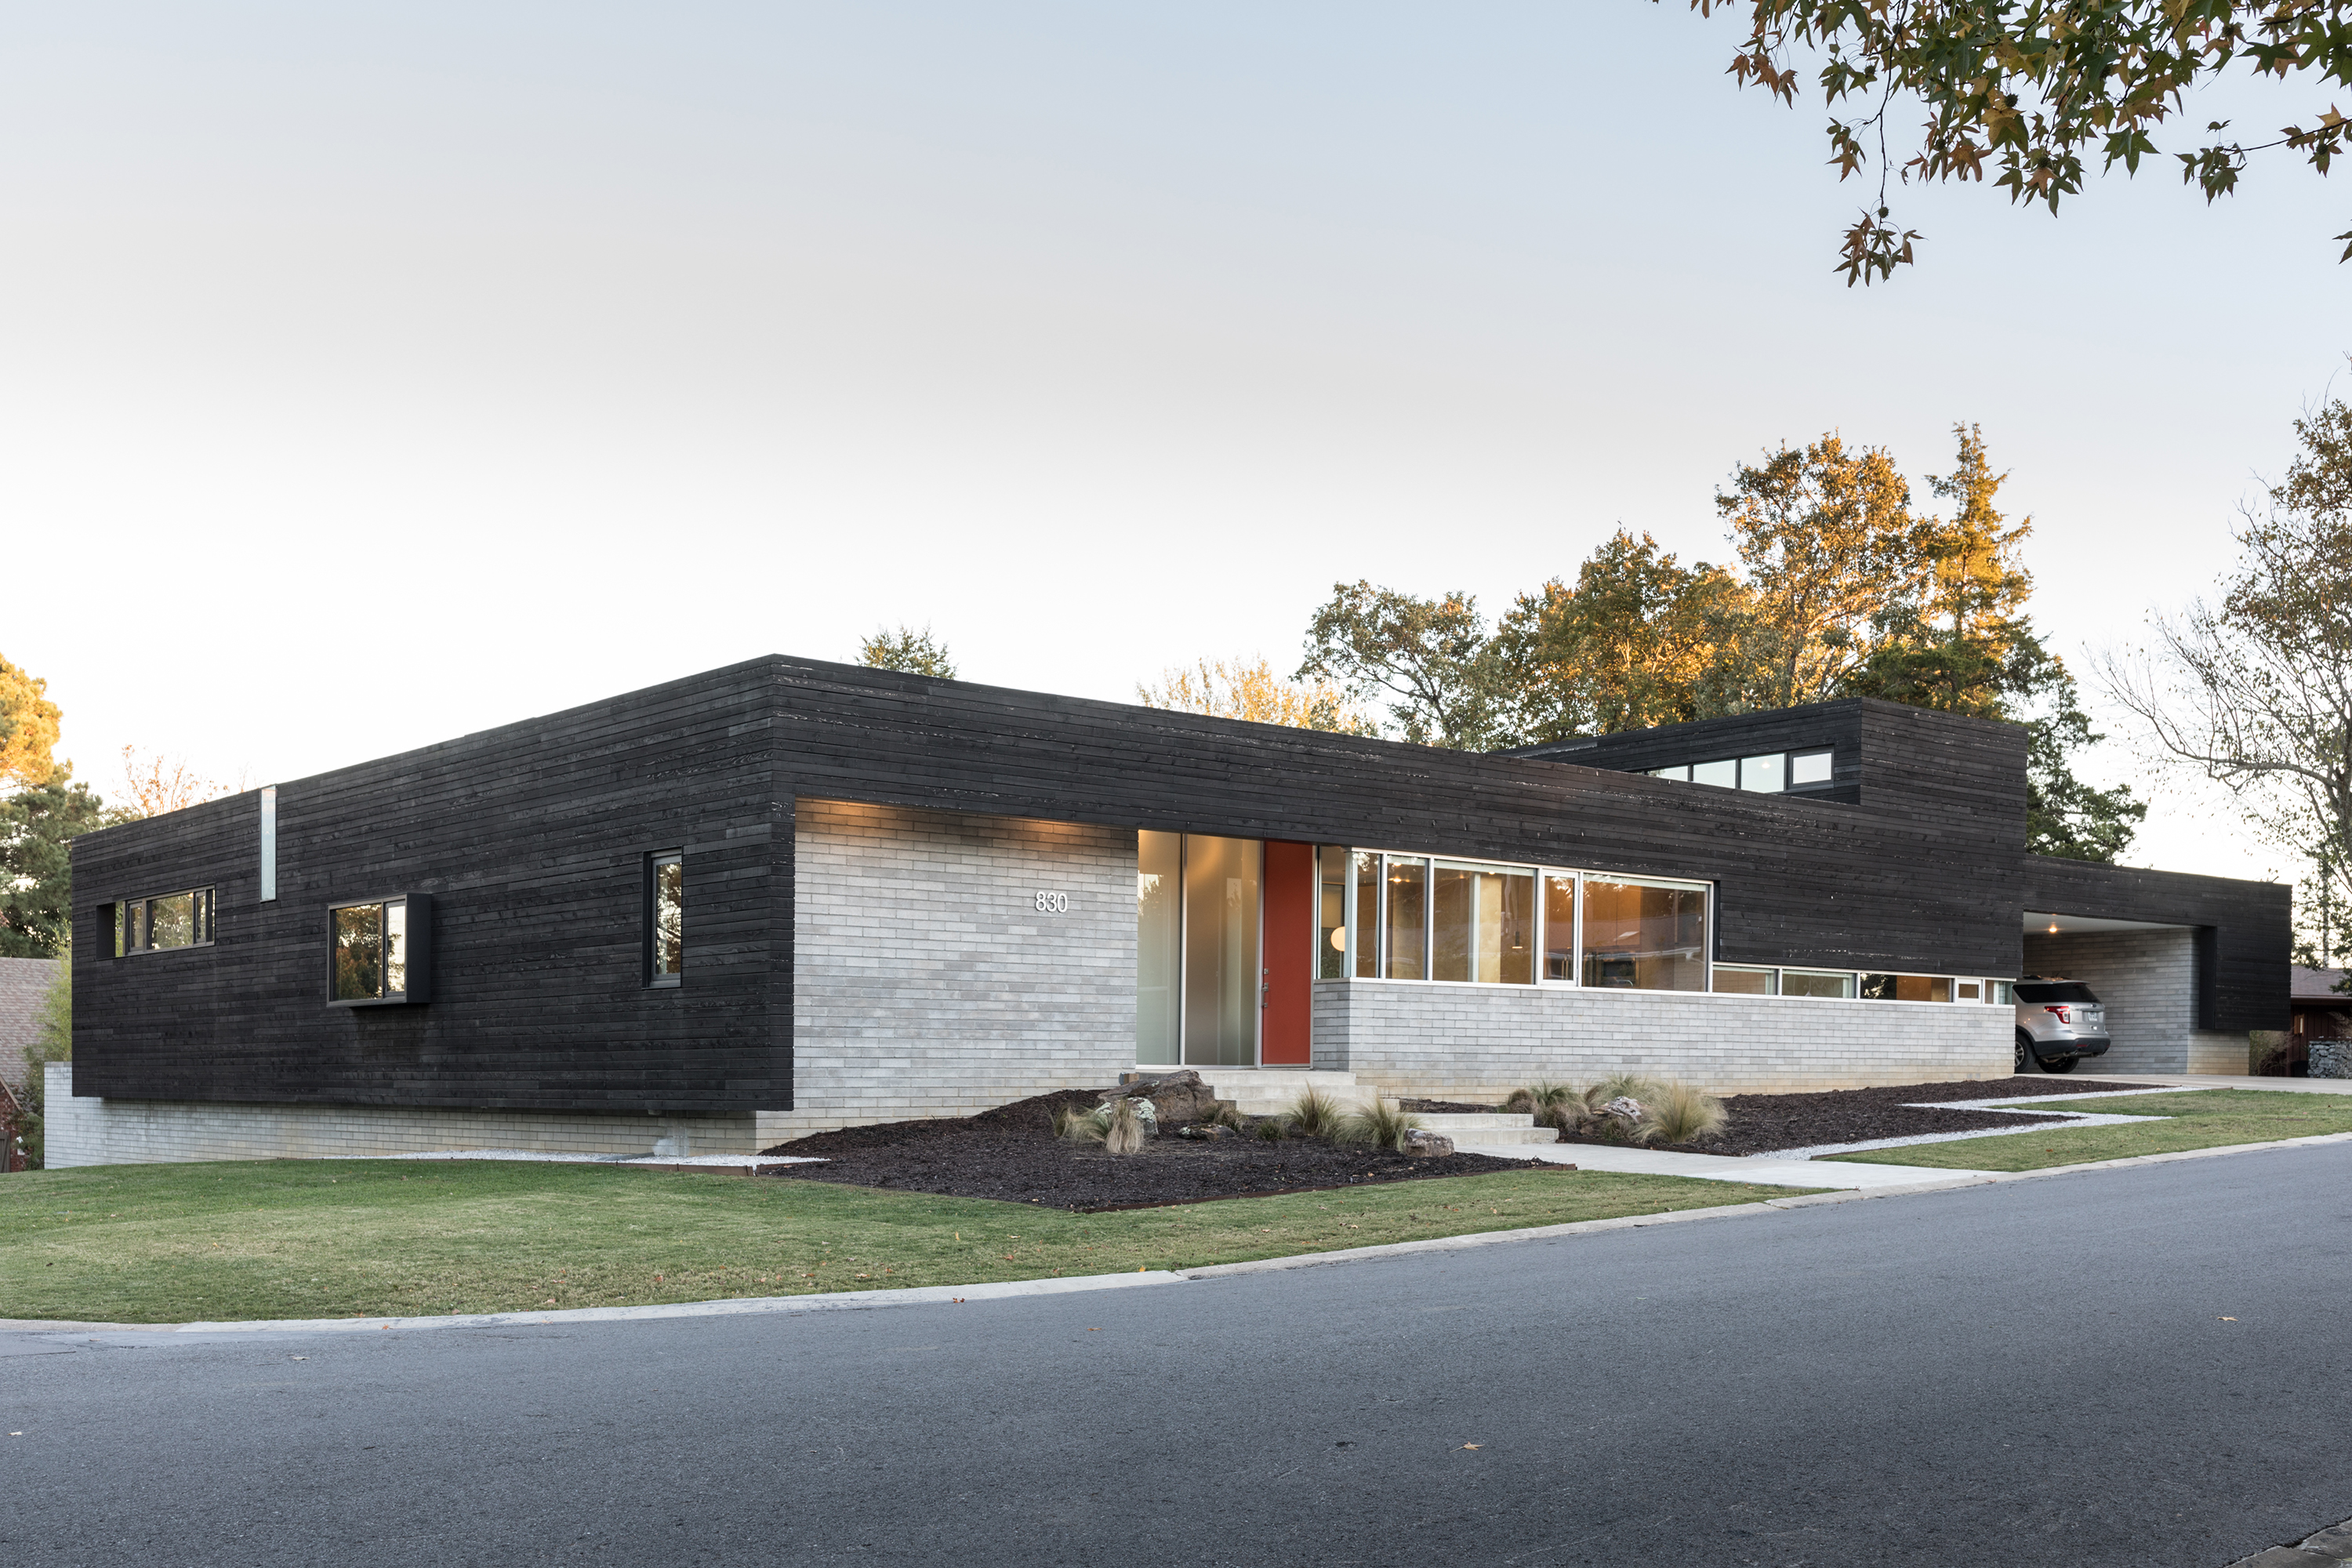 The modern house is covered by wood siding and concrete brick.